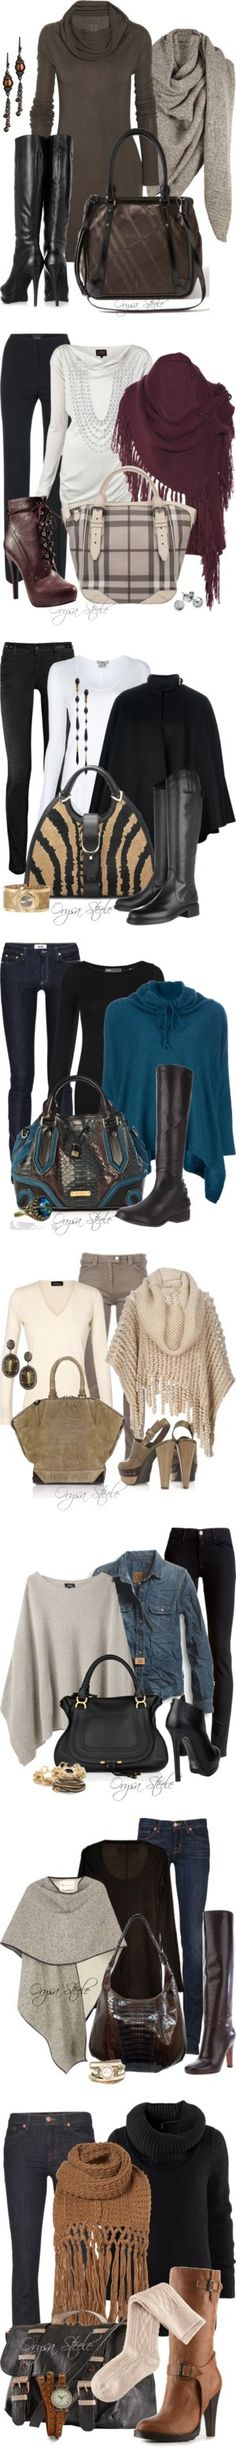 """A Shawl for Fall"" by orysa on Polyvore"